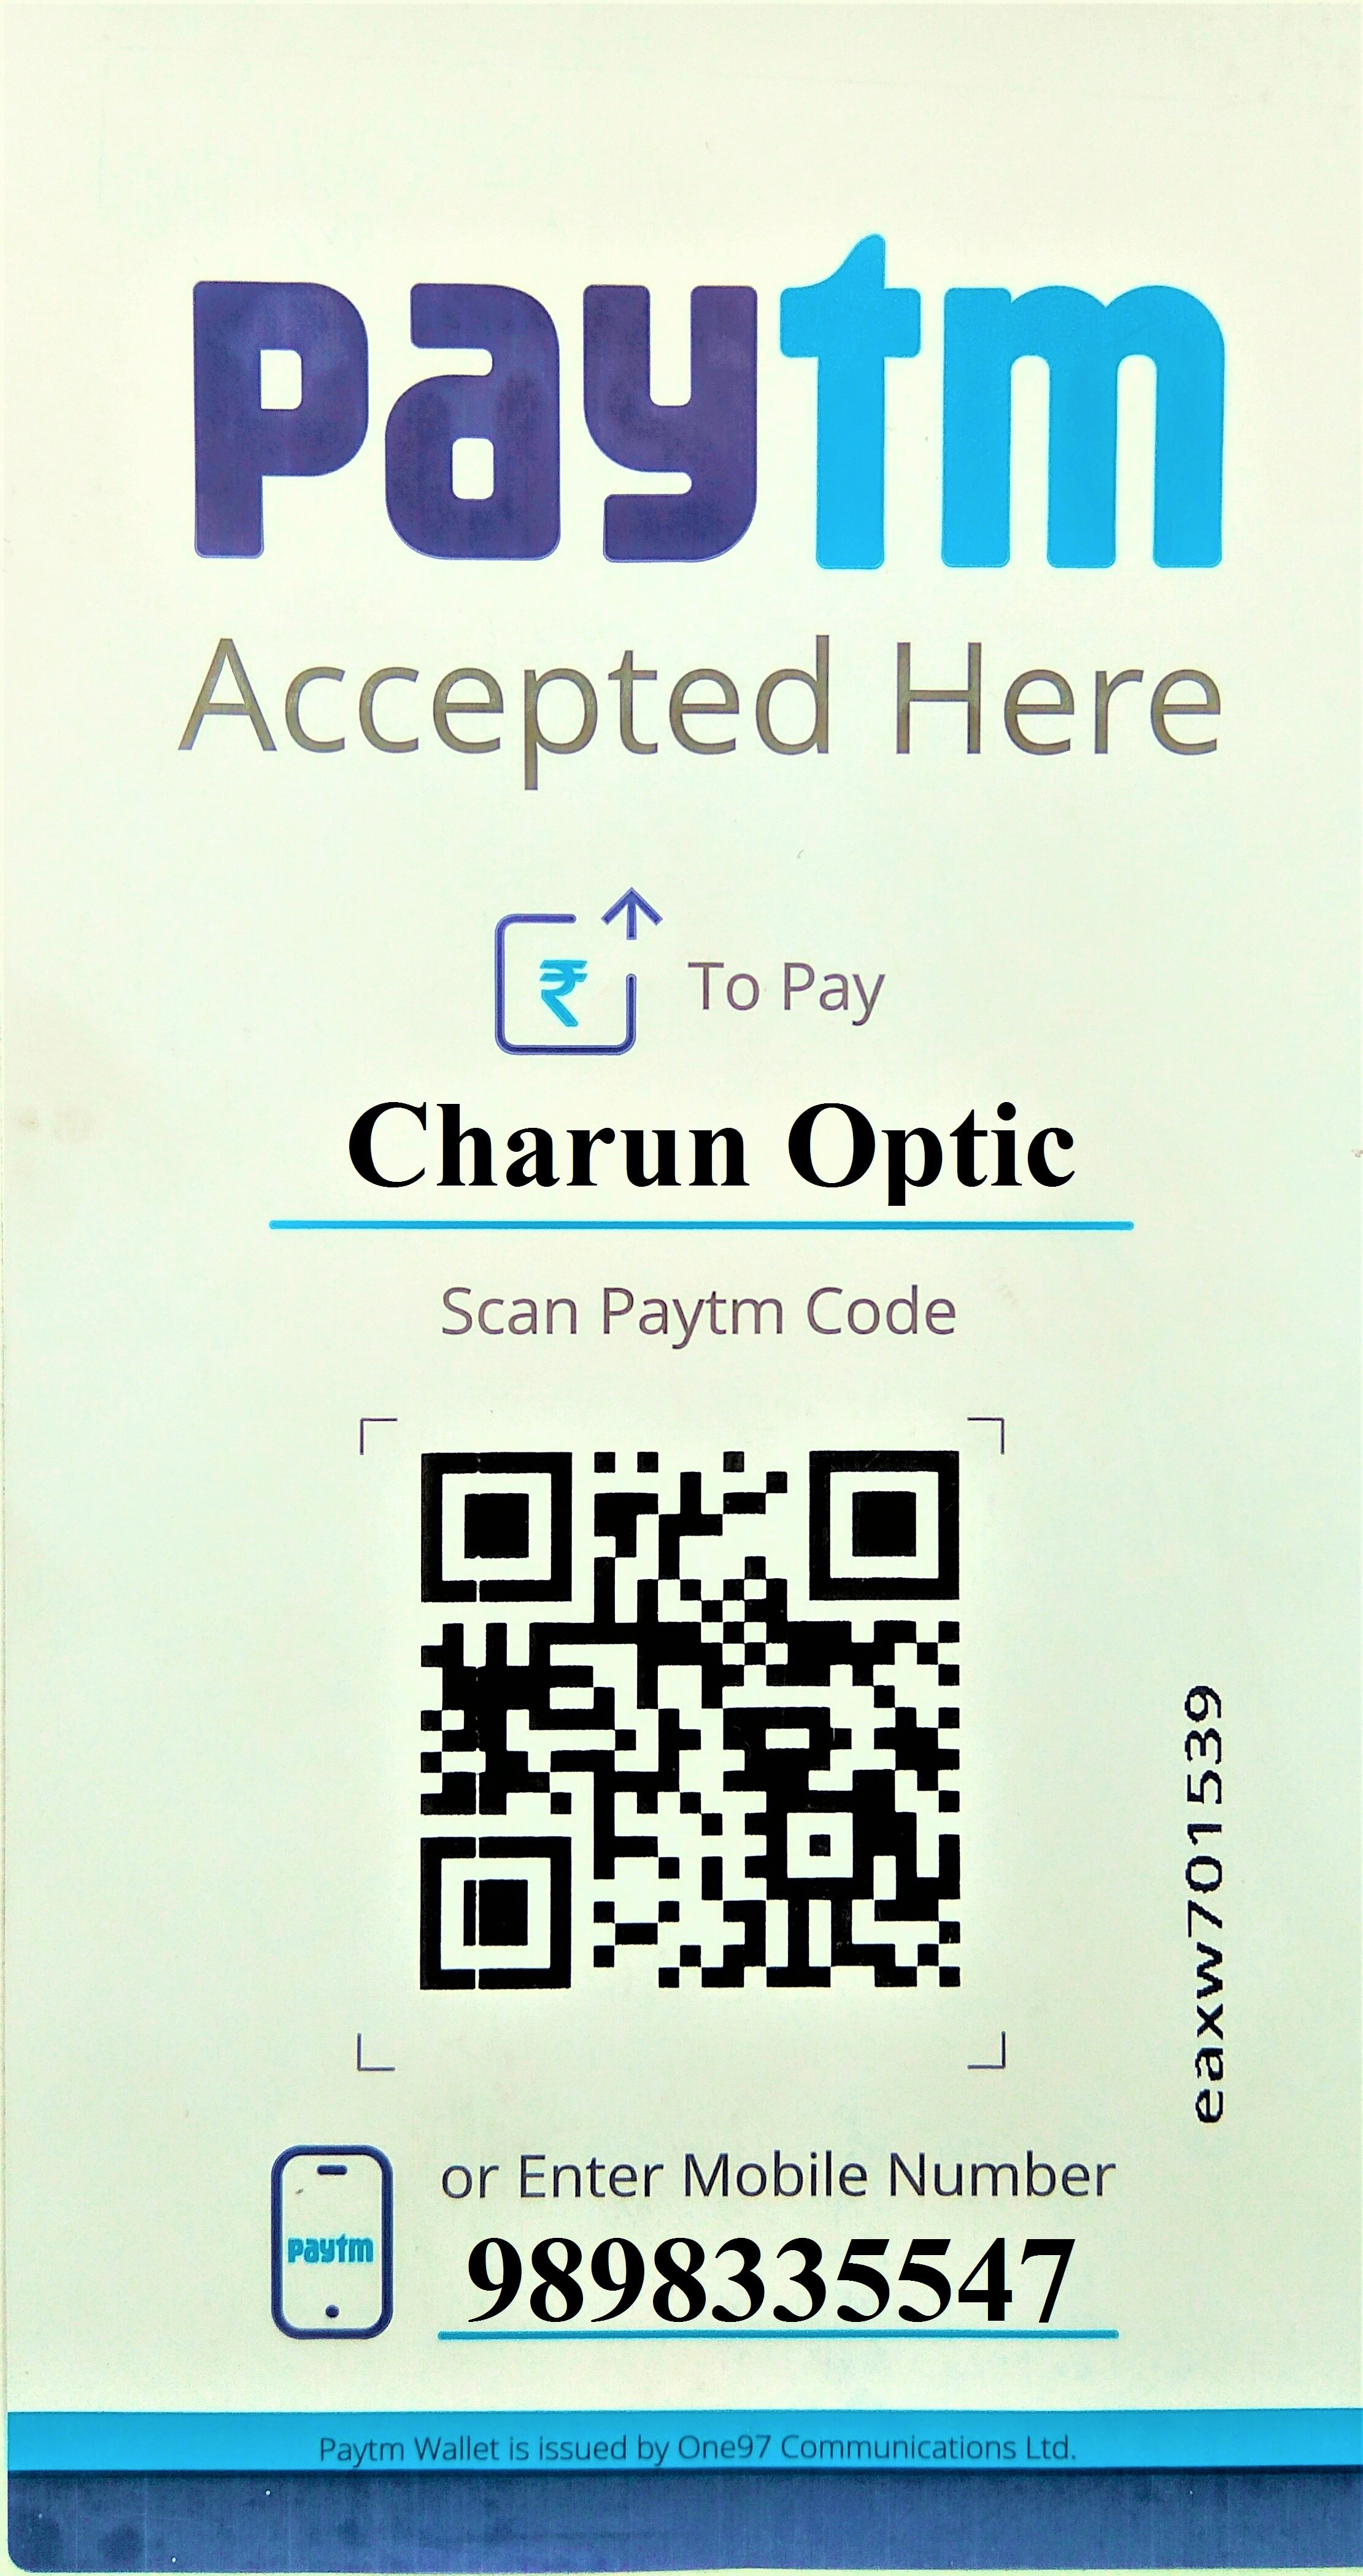 PAYTM Karo @ Charun Optic  Paytm is now Partner with Us We Accept the payment through Paytm Both Online & Offline  Customers Just tap Pay or send button 1) Scan Our QR Code, enter amount & Pay. OR 2) Enter Our mobile number, enter amount & Pay.   #charunoptic #paytm #paytmkaro #onlinepayments #digitalization #scanpay #optician #sunglasses #eyeglasses #opticalstoreacceptingpaytm #opticianacceptingpaytm #ahmedabad #paytmstore #pay #scan #qrcode #firstopticiantoacceptpaytminahmedabad #instagram #facebook #qrcodepayments #shopping #shop   C   O Charun Optic For Orders Call / Whatsapp +919898335547 Find Us @ All Social Media www.charunoptic.com Shop Online @ shop.charunoptic.com